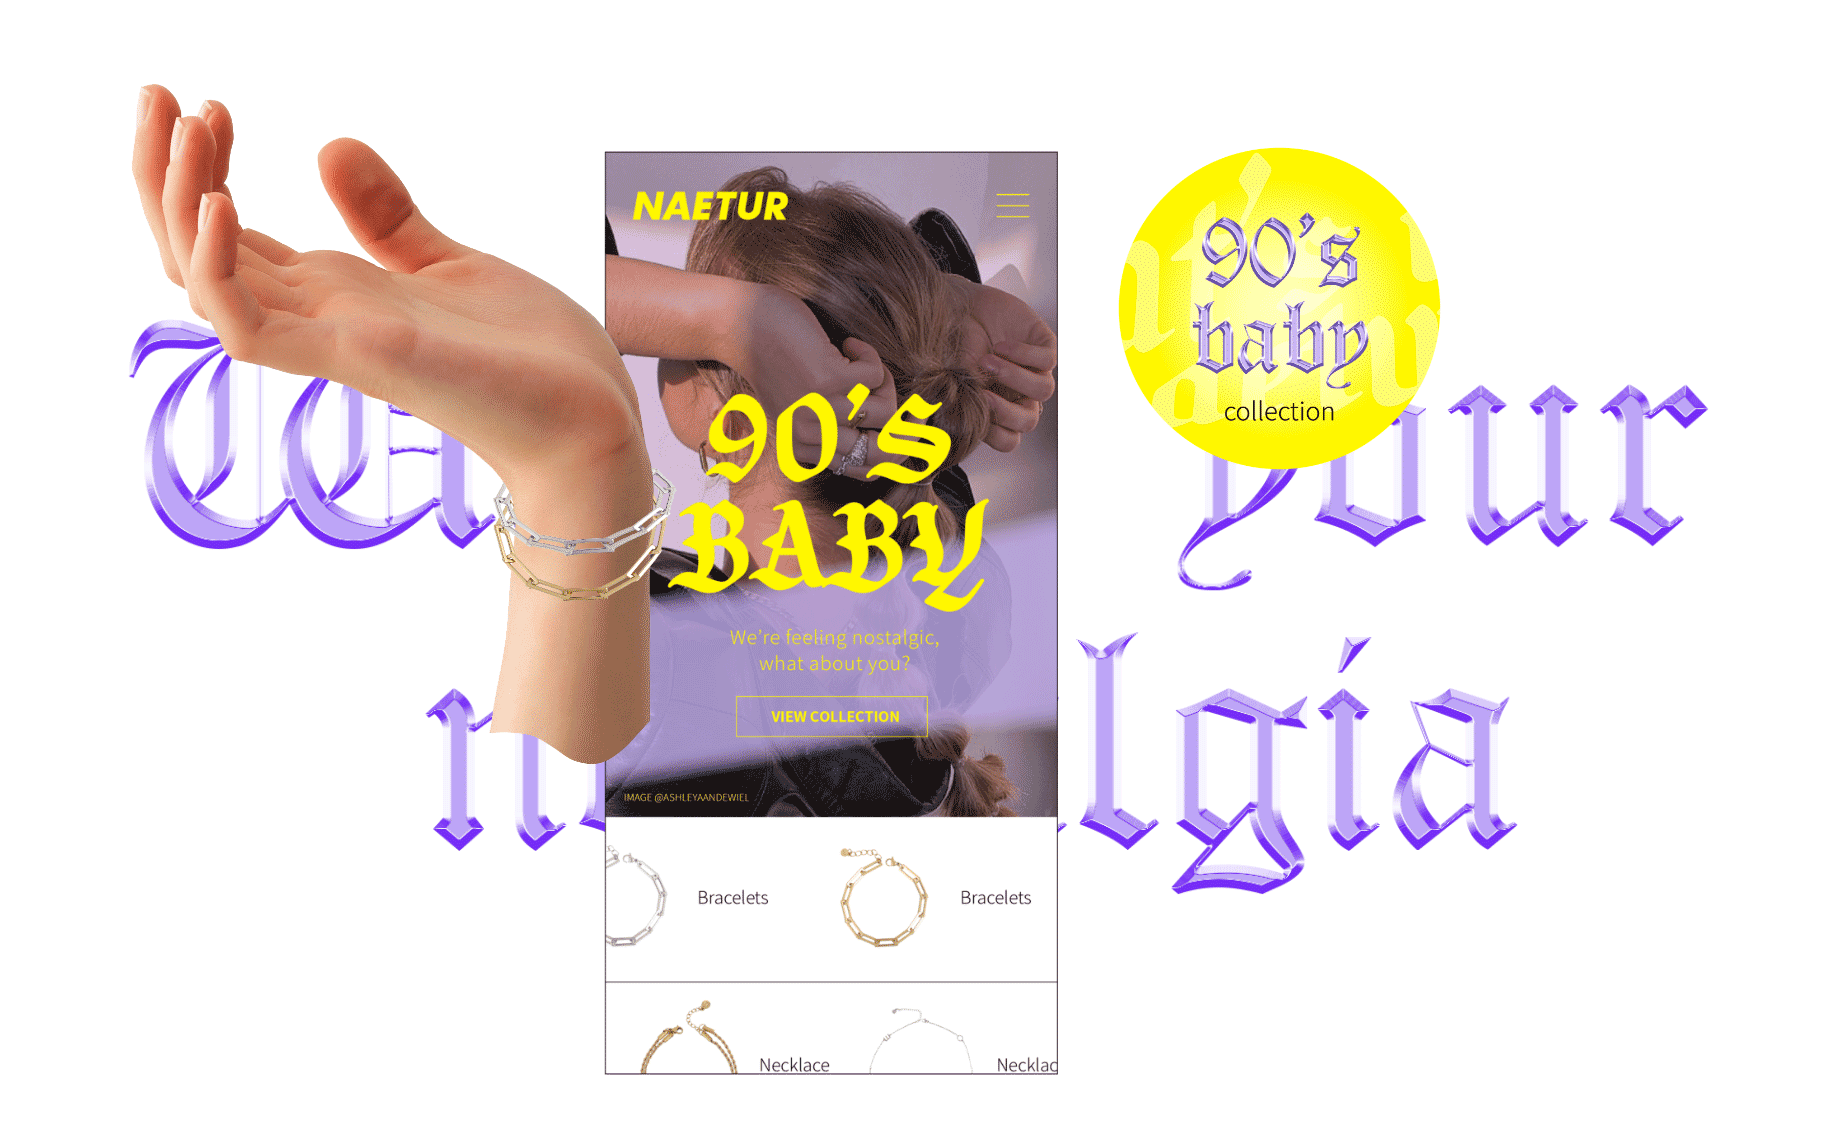 Naetur Campaign 90's Baby